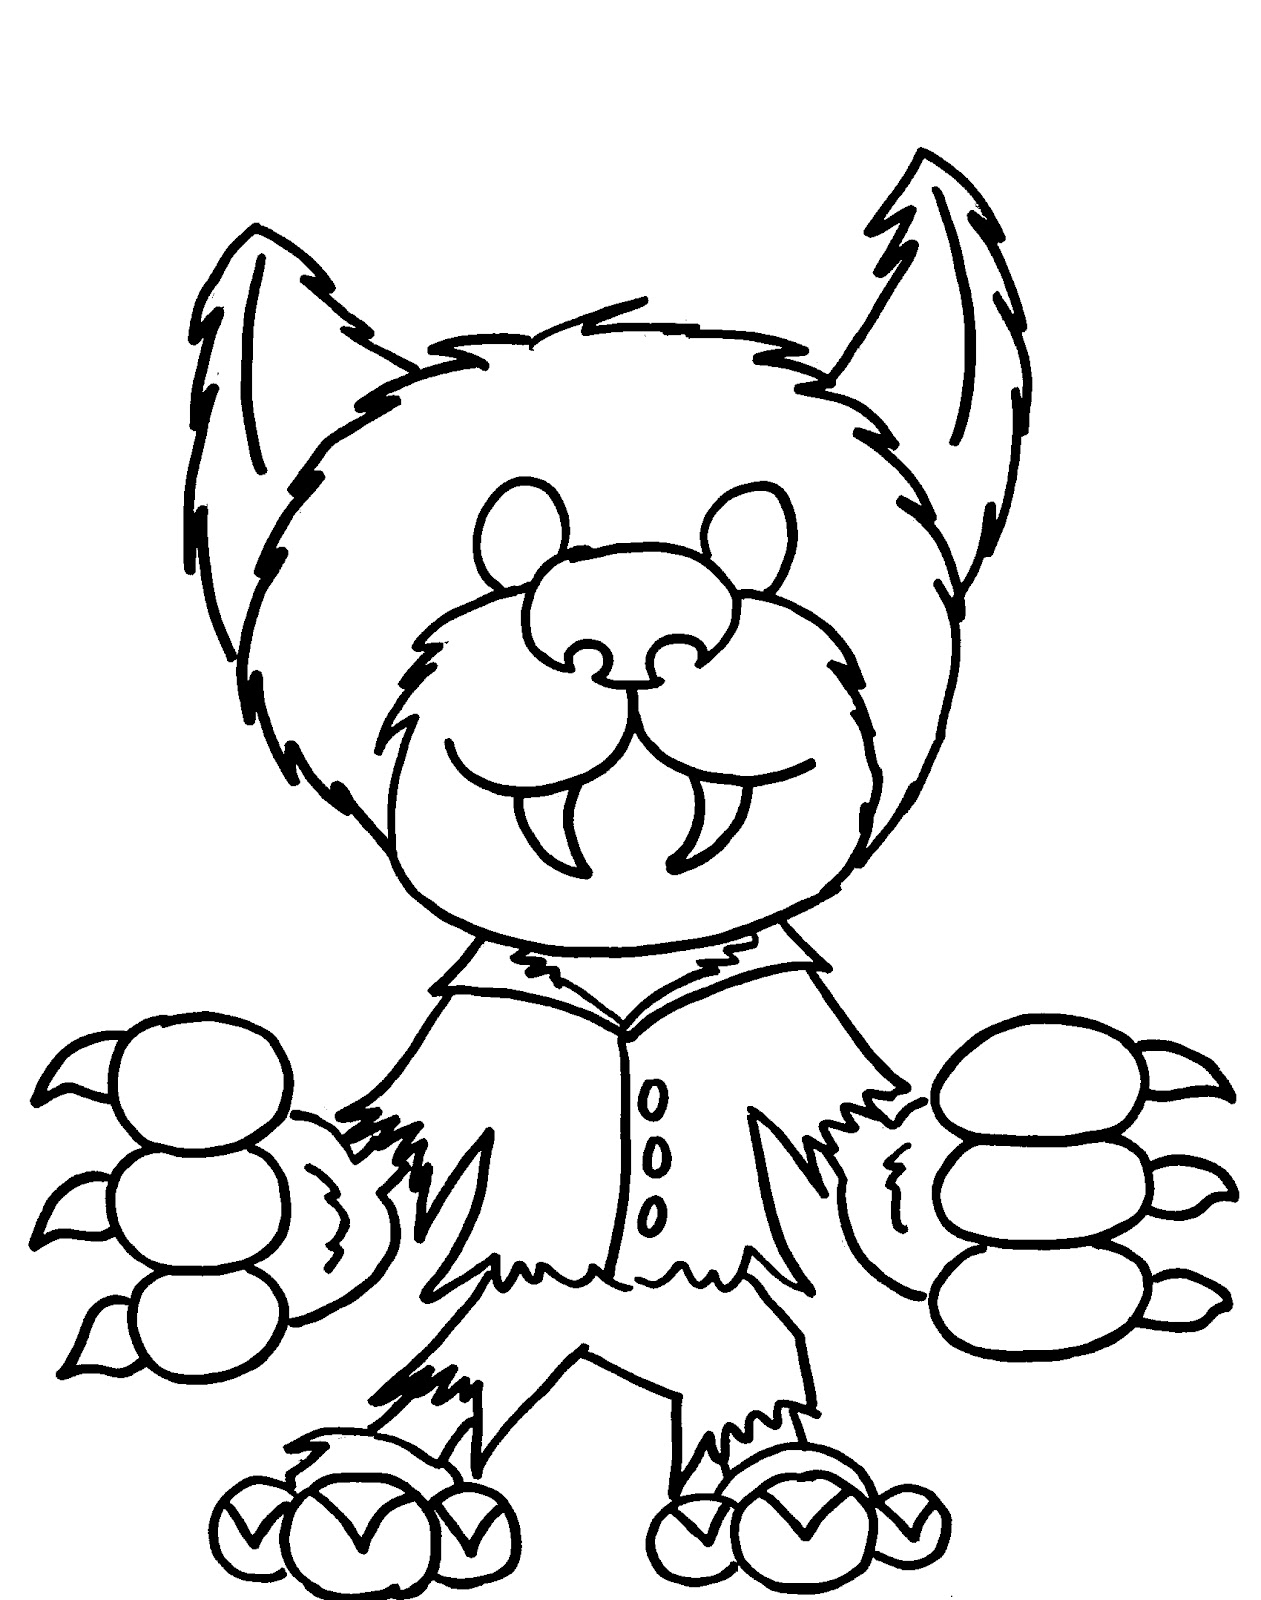 cute-monsters-halloween-coloring-pages